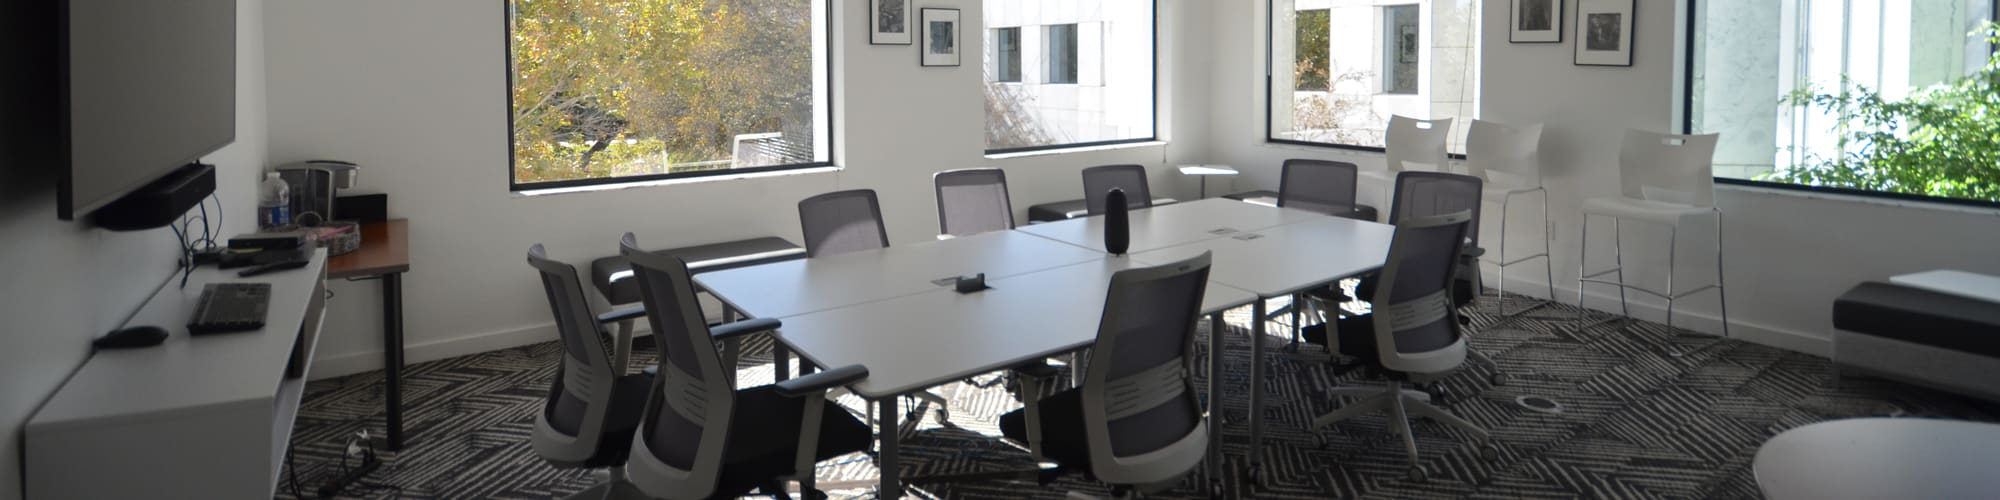 Plaza-on-the-Lake-Suite-380-Sublease-Conference